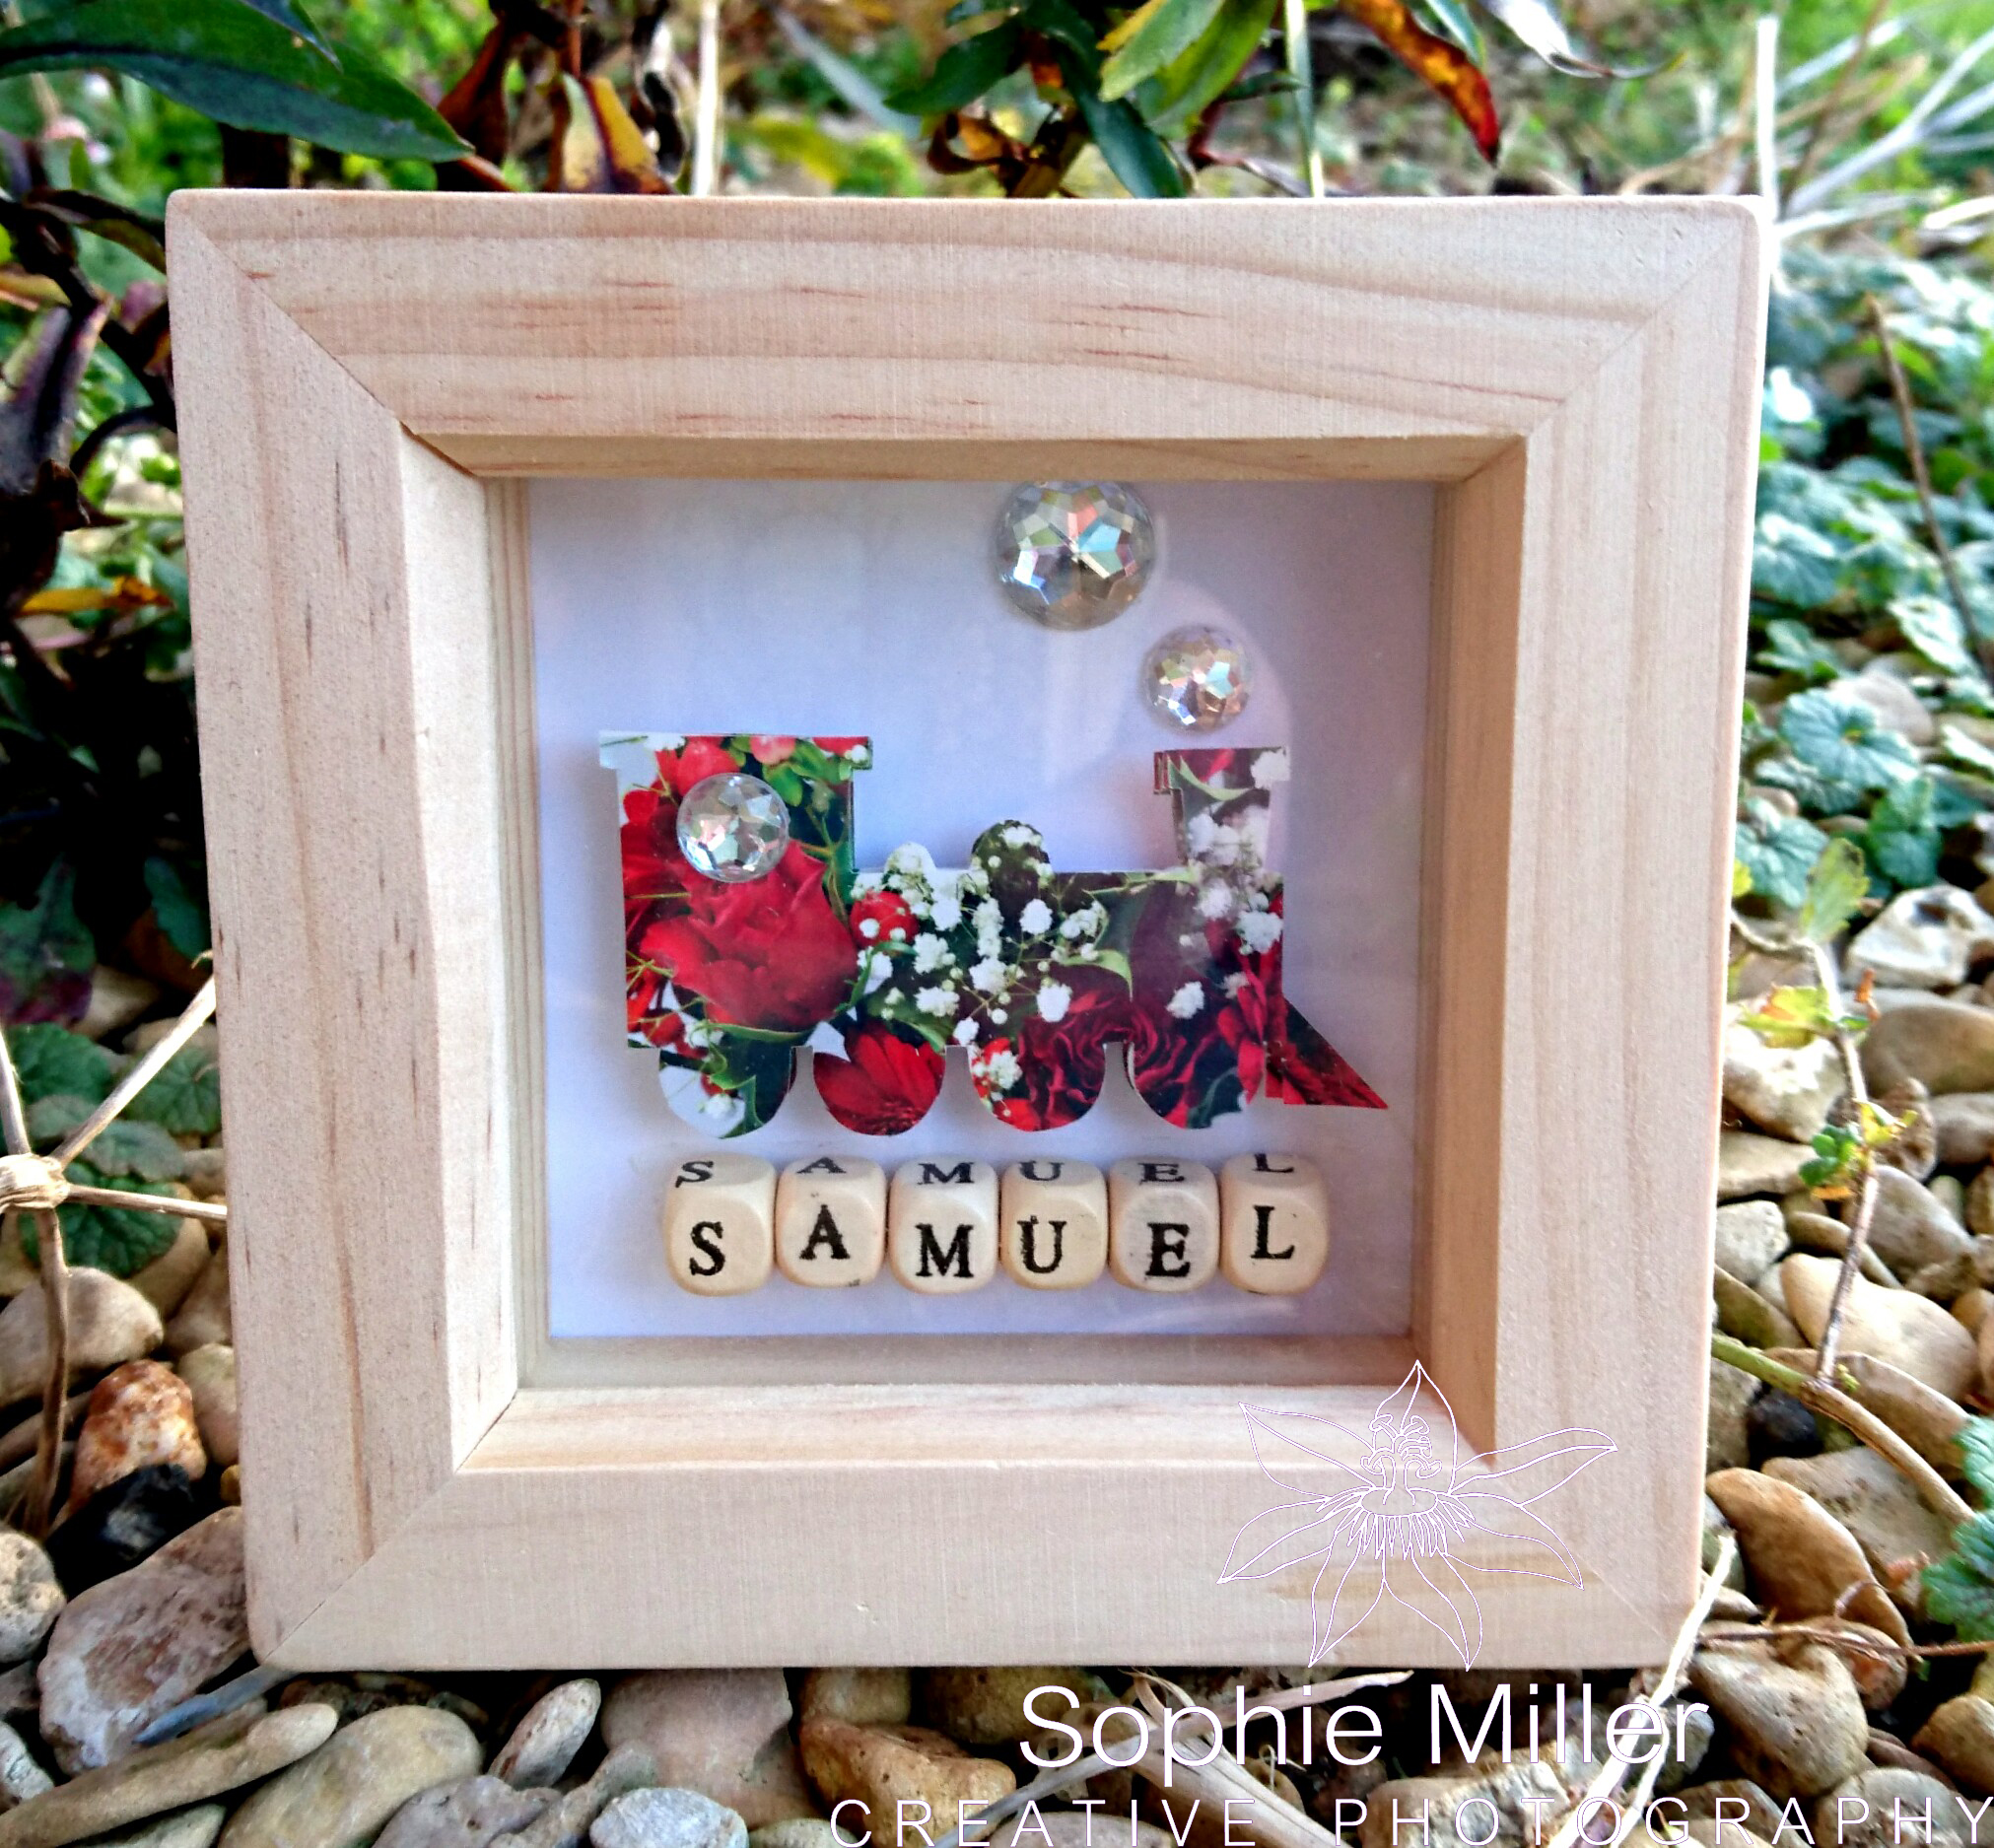 Small Train Frame £6.50